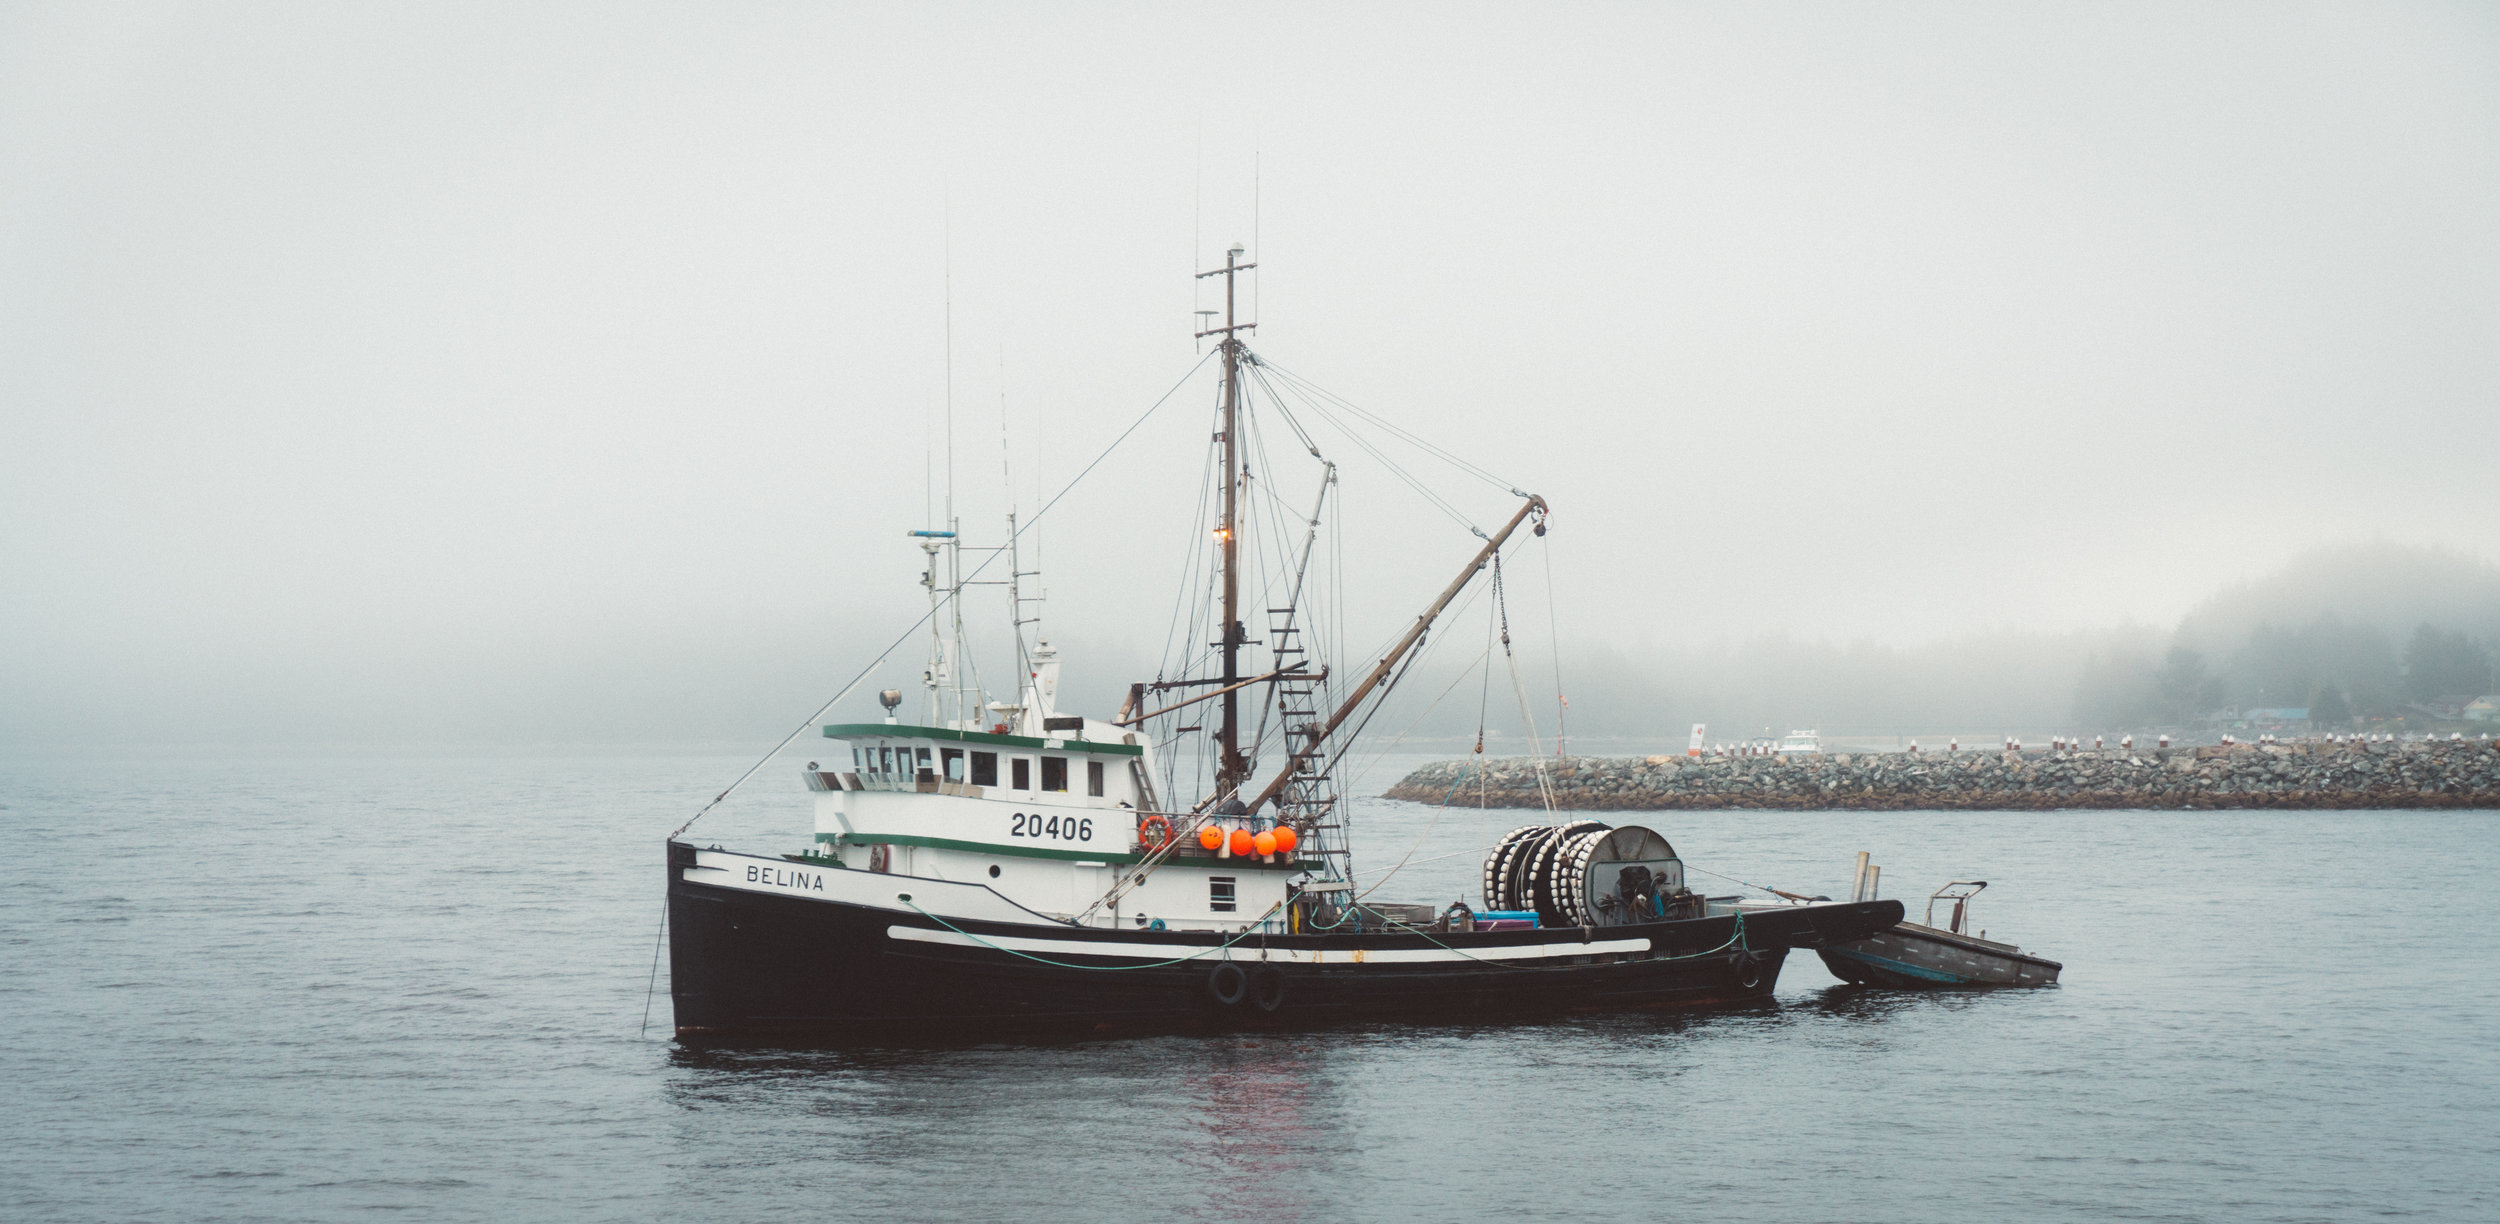 Fishing vessel as seen from our next destination, the wharf.